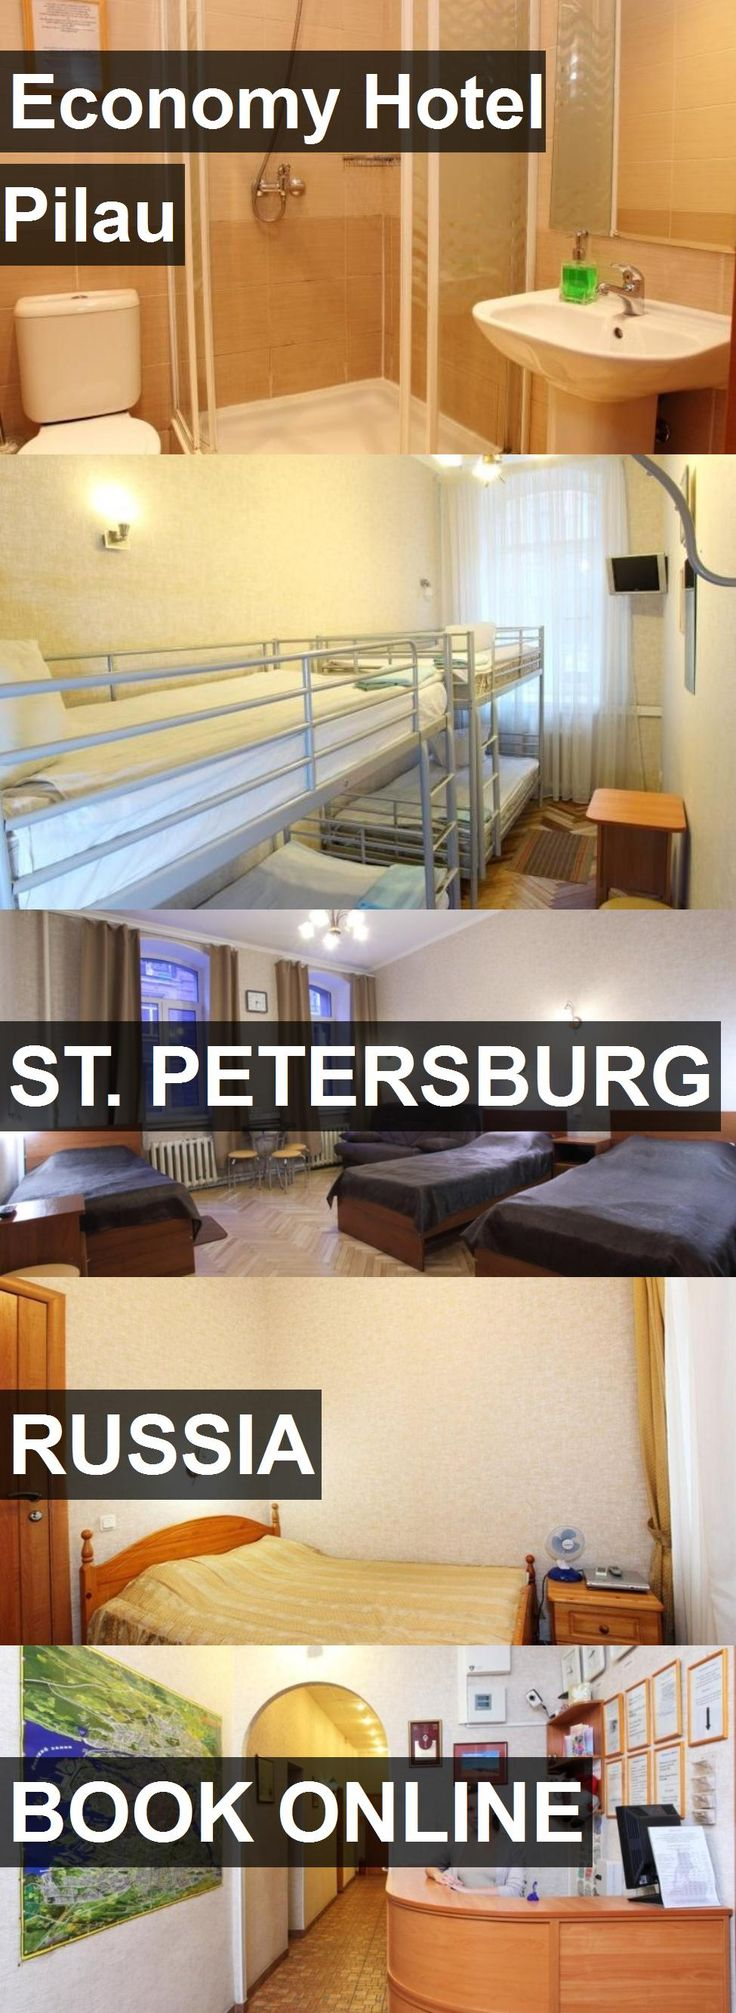 Economy Hotel Pilau in St. Petersburg, Russia. For more information, photos, reviews and best prices please follow the link. #Russia #St.Petersburg #travel #vacation #hotel